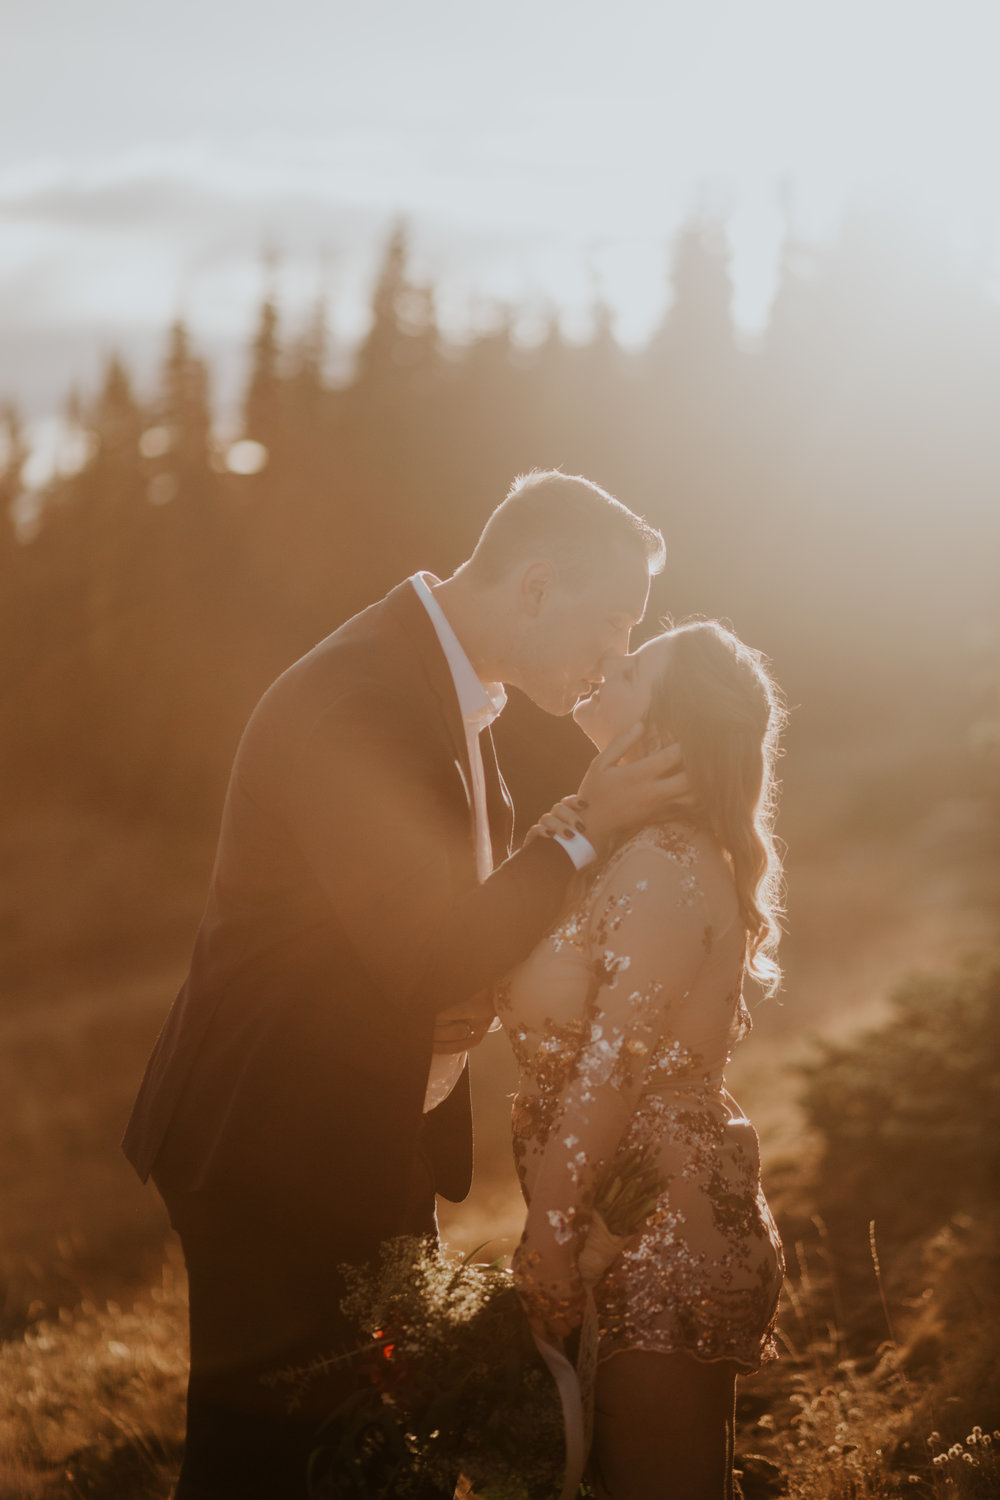 PNW-Hurricane-Ridge-Port-Angeles-Washington-elopement-photographer-kayla-dawn-photography-kayladawnphoto-wedding-anniversary-photoshoot-olympic-peninsula-318.jpg